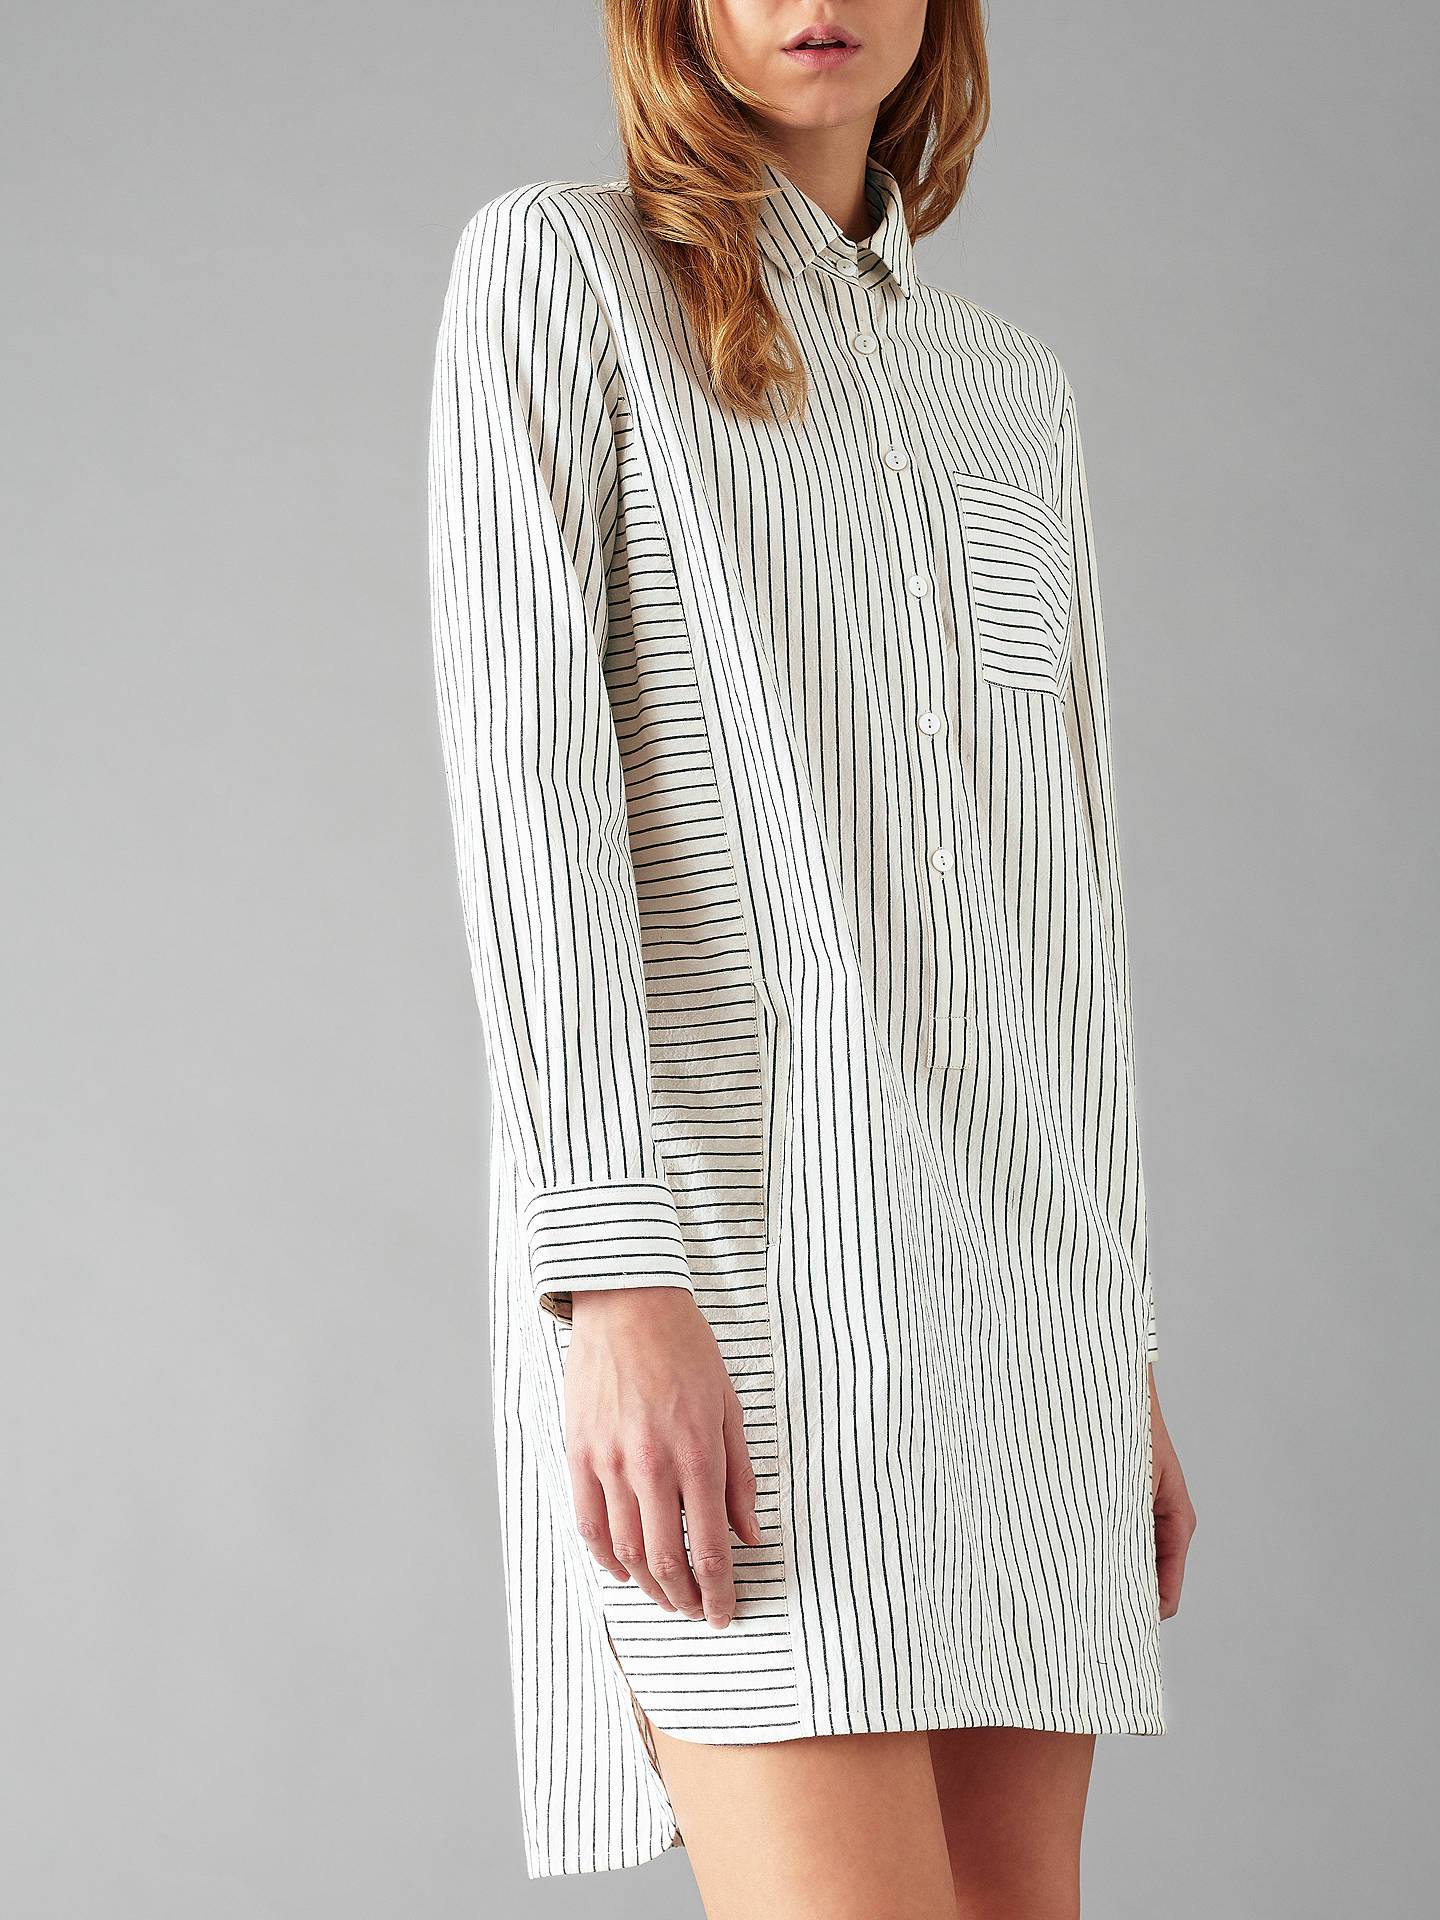 Buy People Tree Edith Stripe Shirt Dress, White, 8 Online at johnlewis.com